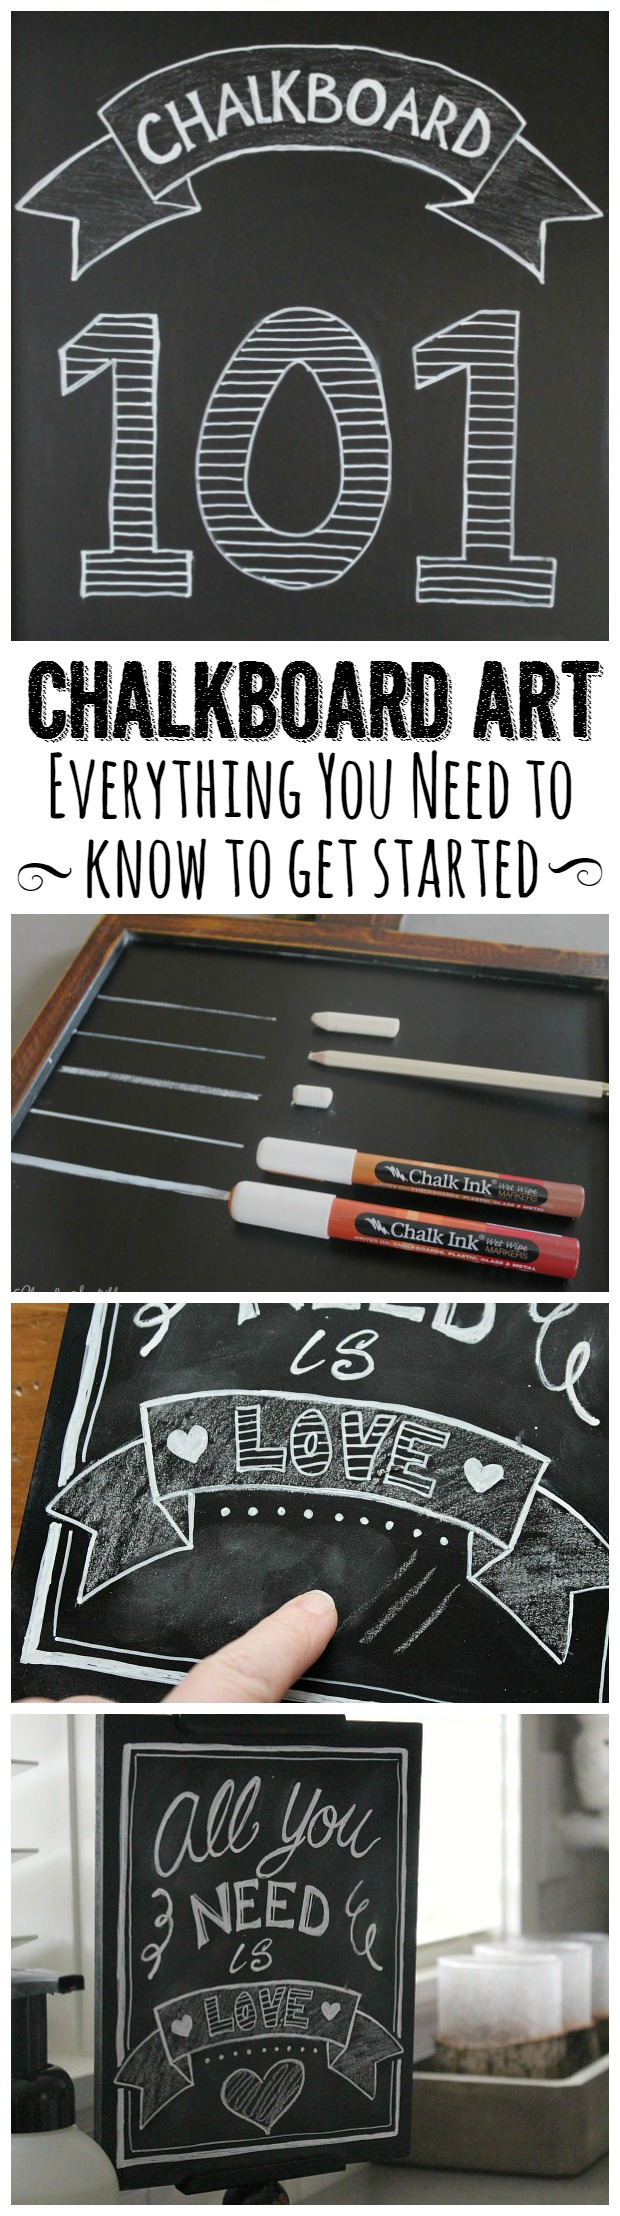 great tips for creating your own chalkboard art everything you need including how to get rid of. Black Bedroom Furniture Sets. Home Design Ideas